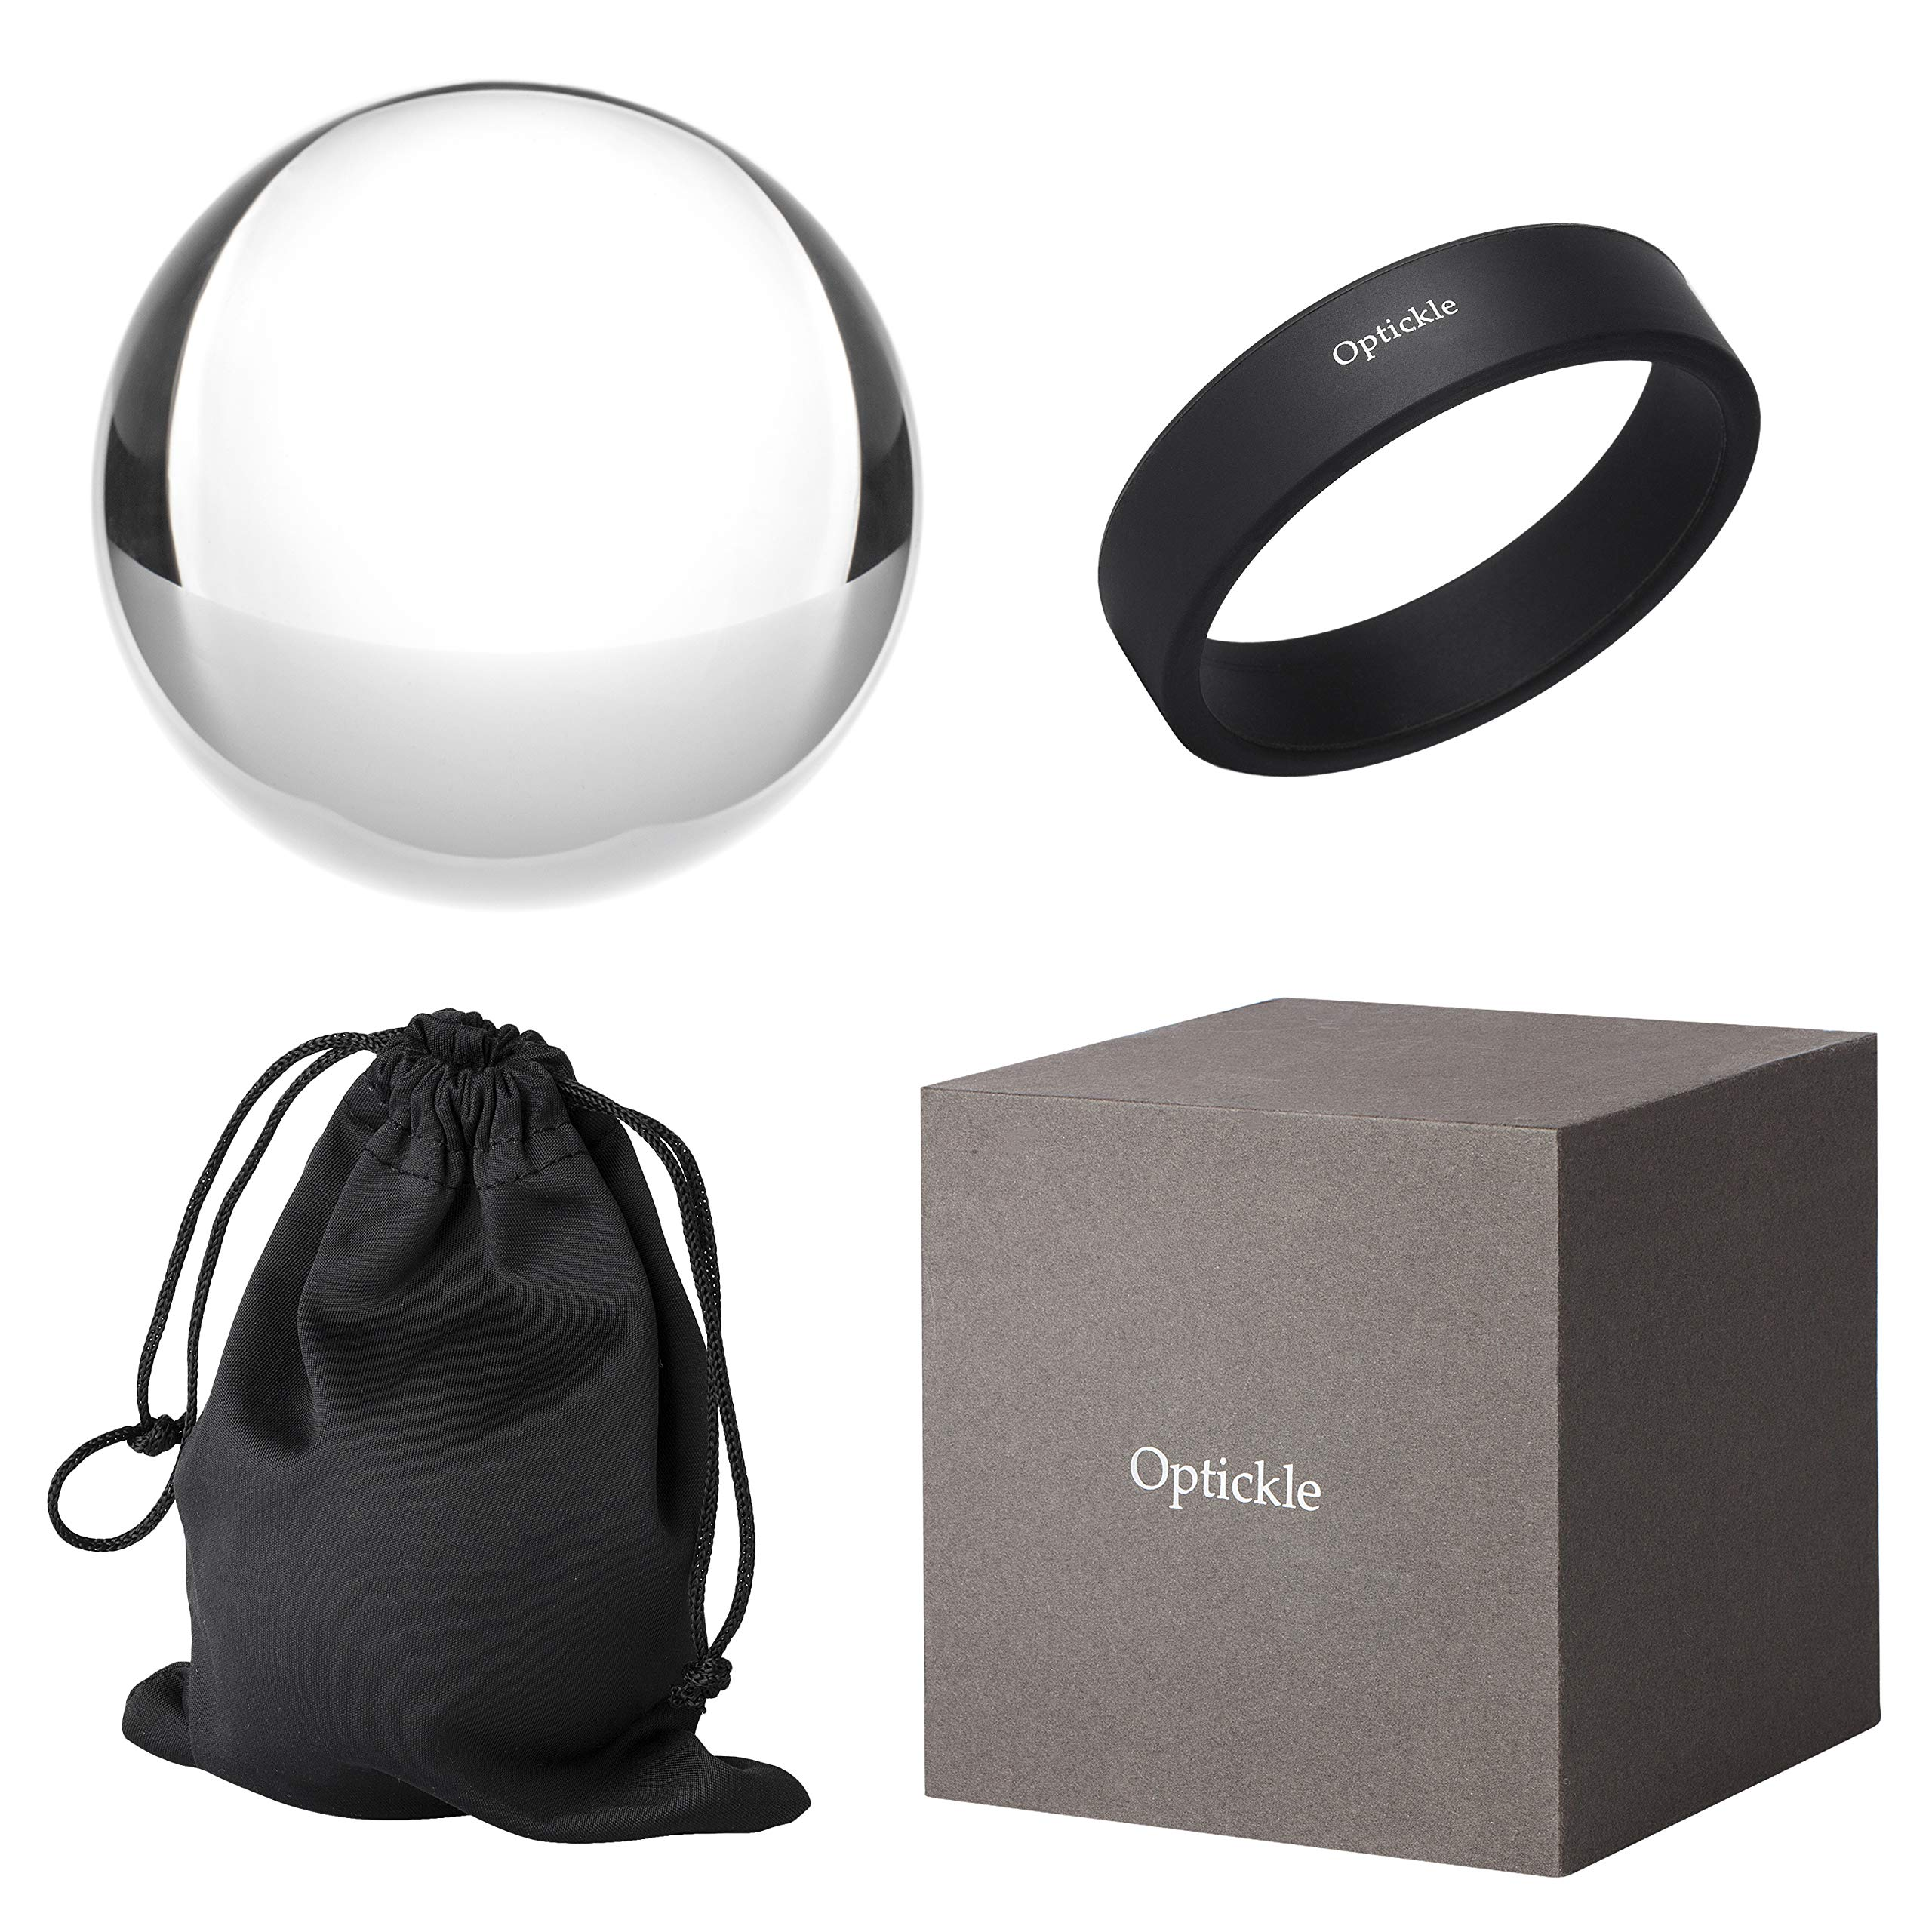 Optickle - Crystal Glass Ball for Photography (78mm) Optical Glass - K9 Crystal - Great Gift Idea for Creatives - Capture Brilliant 180-Degree Photos - No-Scratch Silicone Stand by Optickle